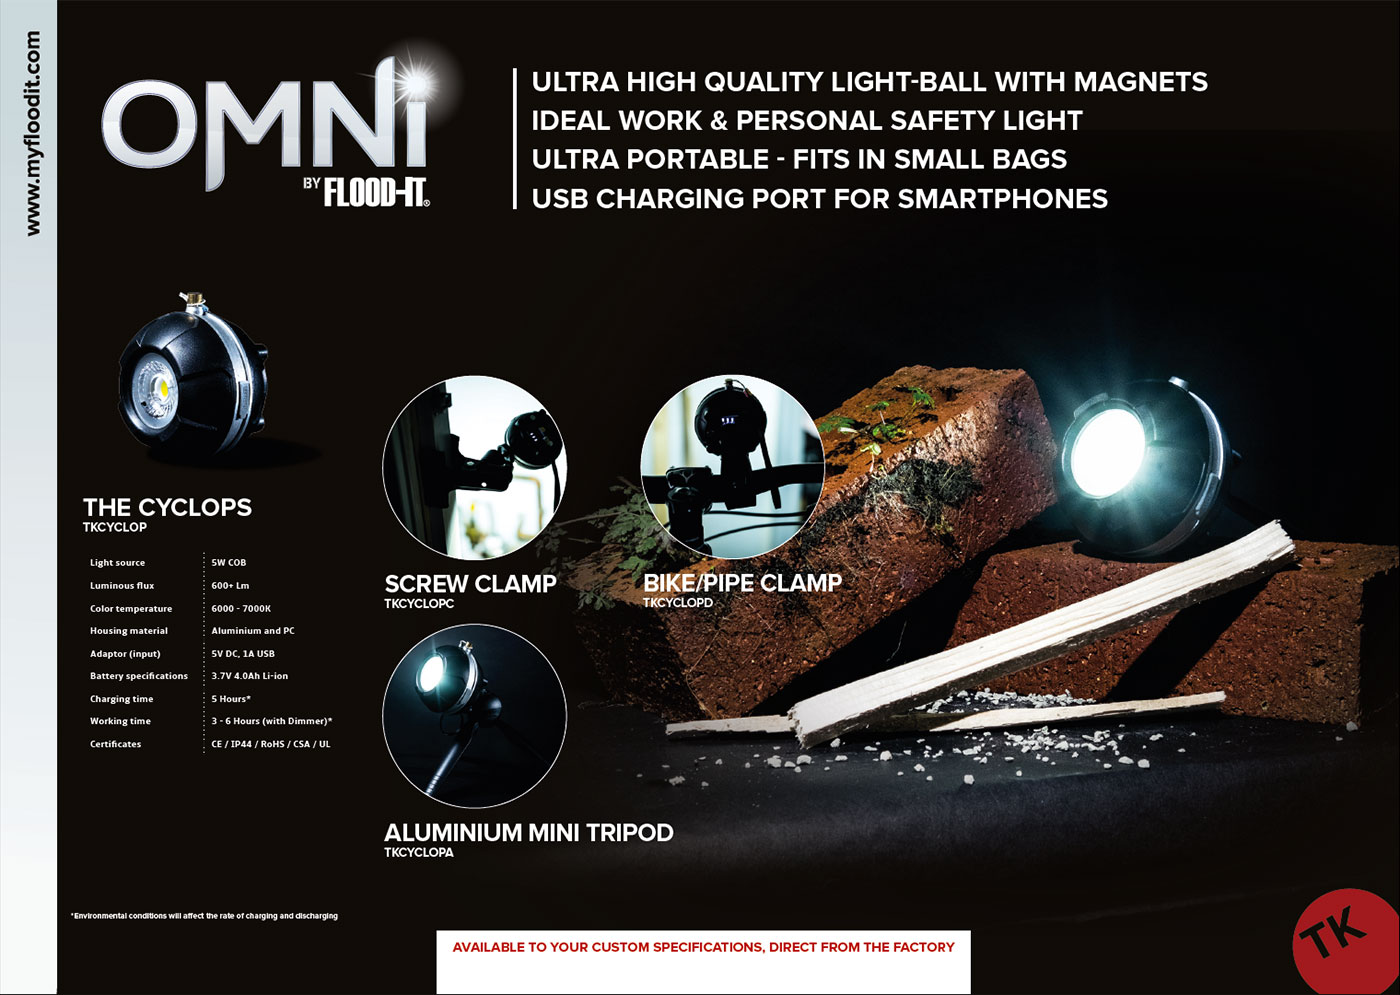 Omni LED mini floodlight torch by FLOOD-IT, graphic designed brochure